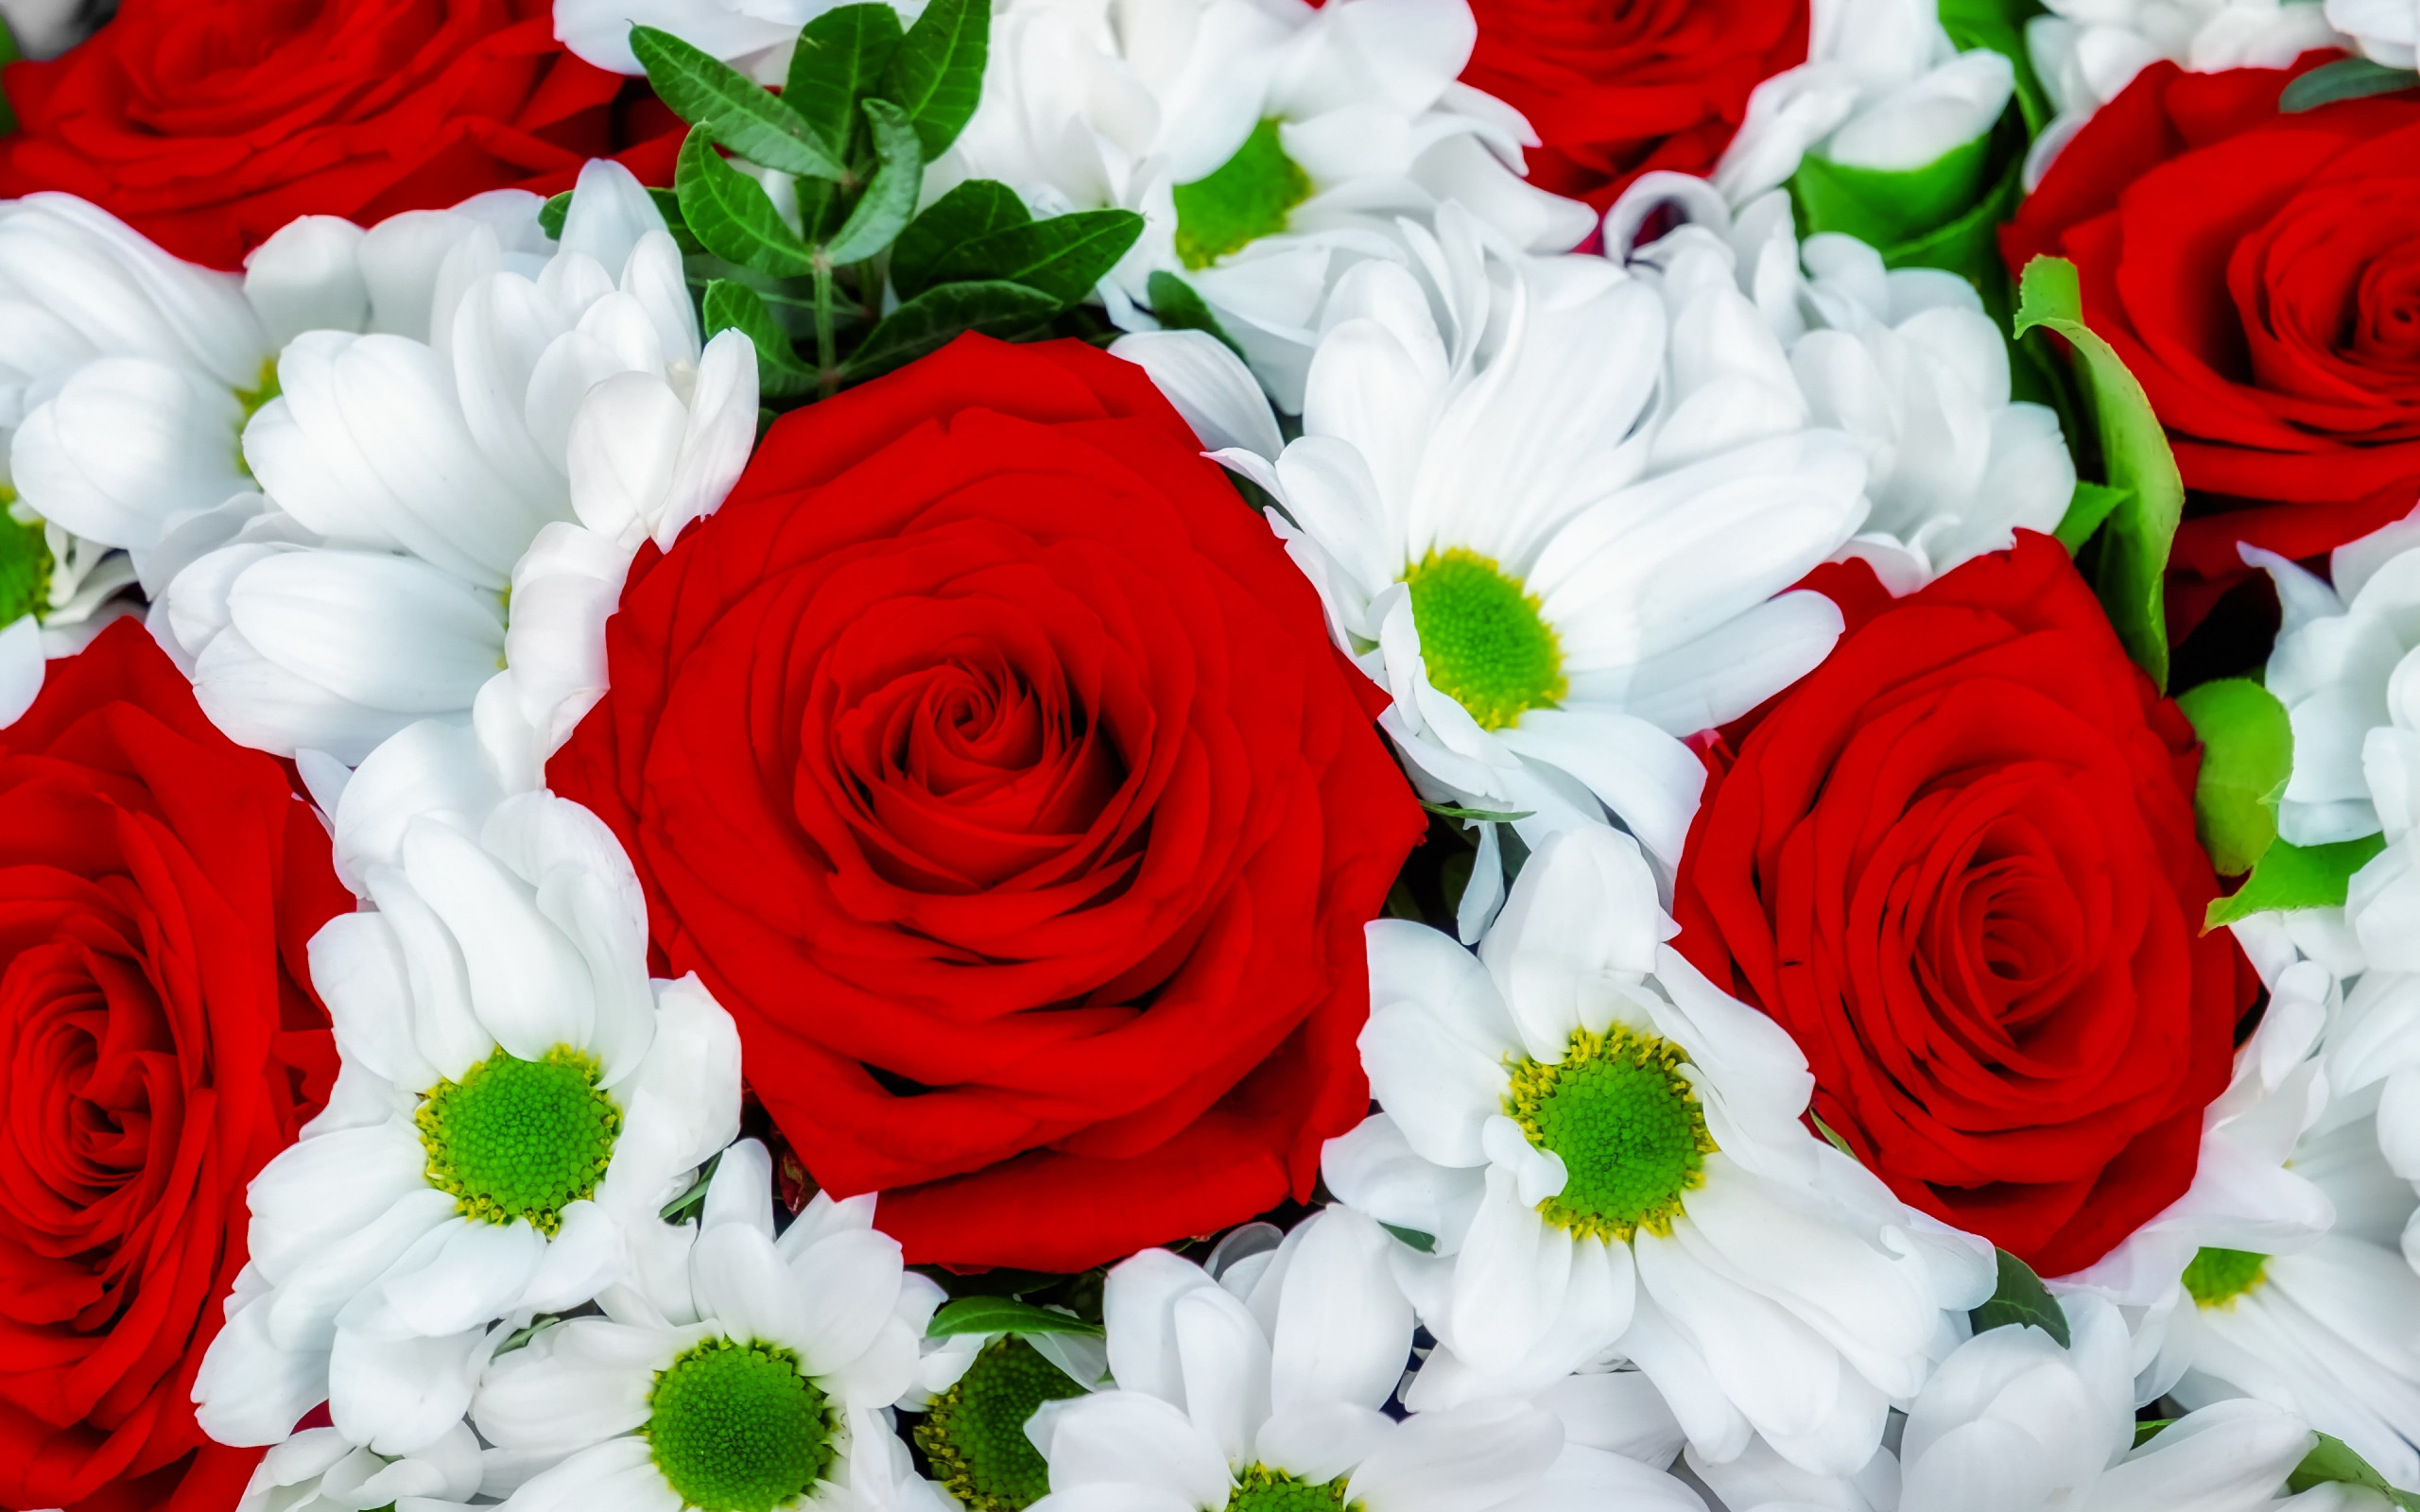 Roses and daisies bouquet wallpaper 2560x1600